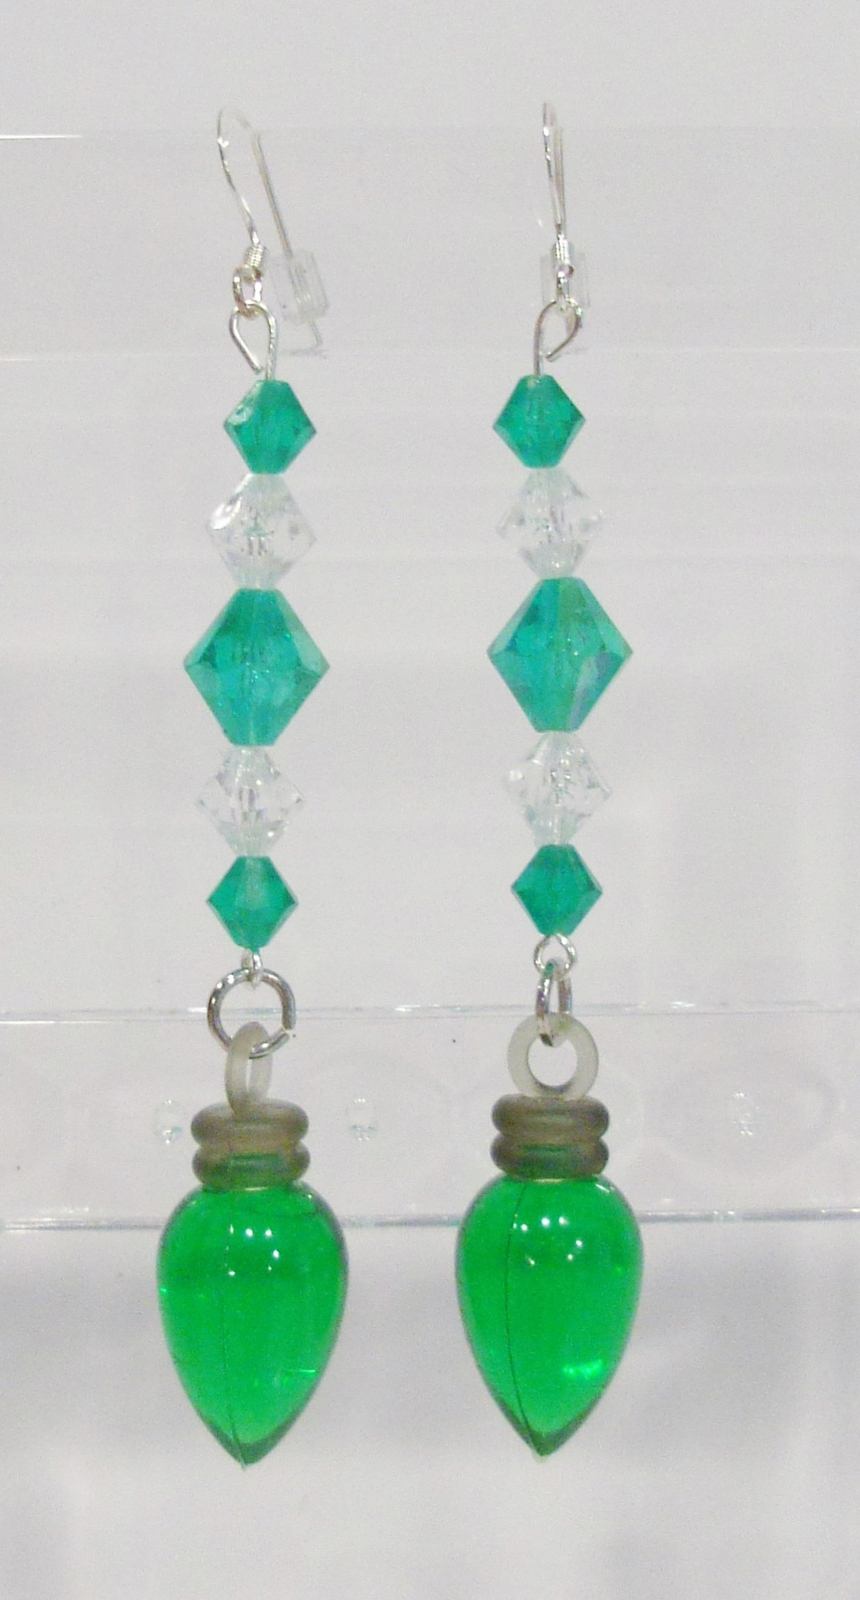 Primary image for handmade Christmas green light bulb drop earrings